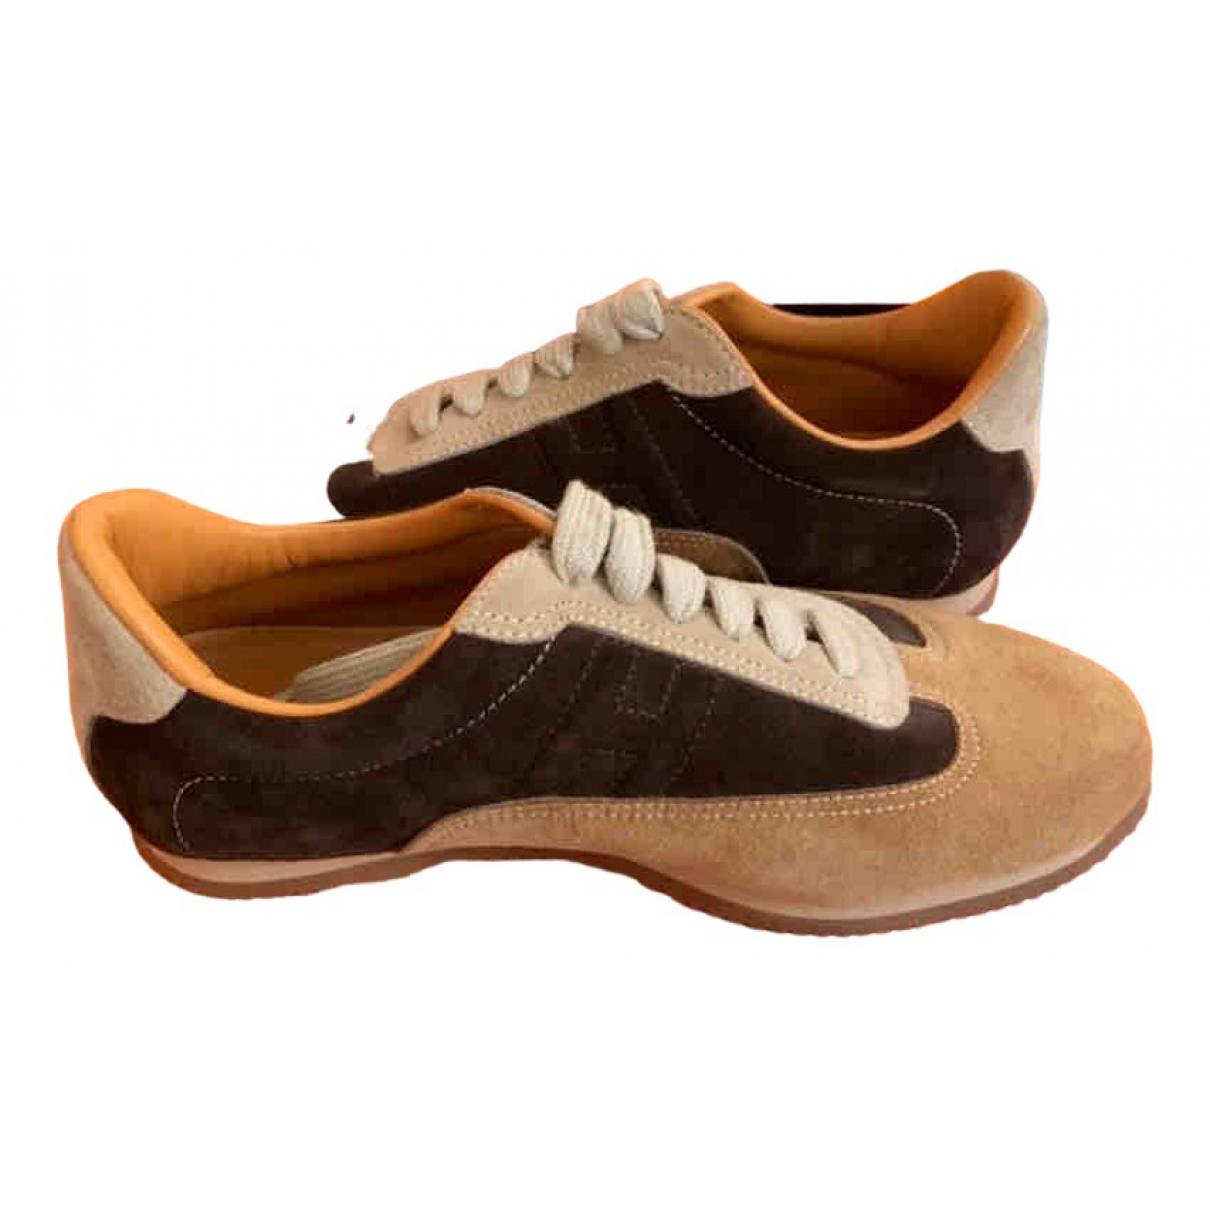 Hermès N Brown Leather Trainers for Women 36 EU